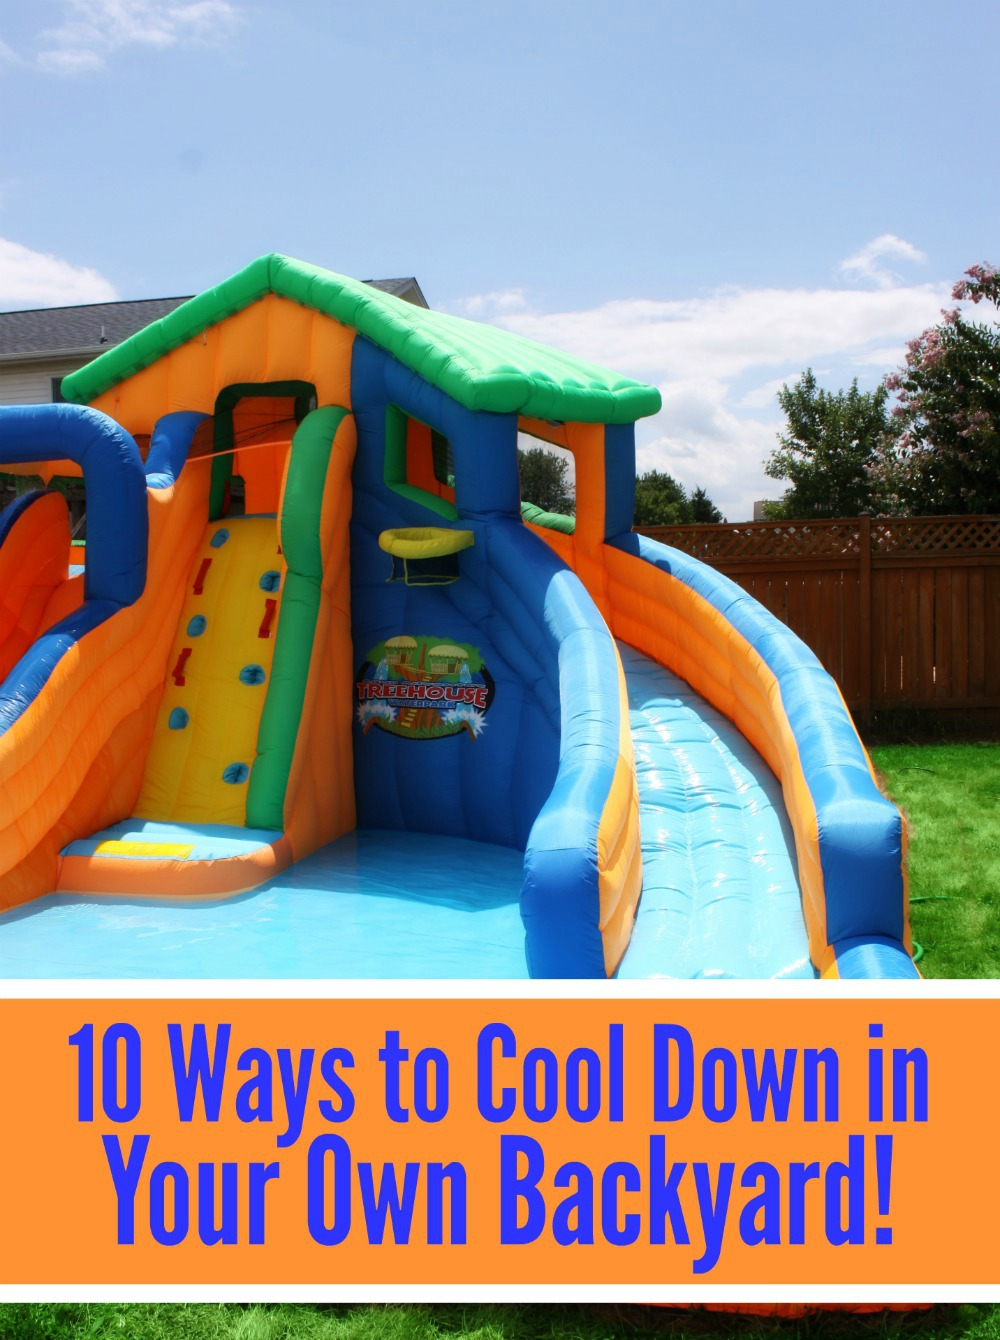 10 Ways to Cool Down in Your Own Backyard | Simply Sherryl